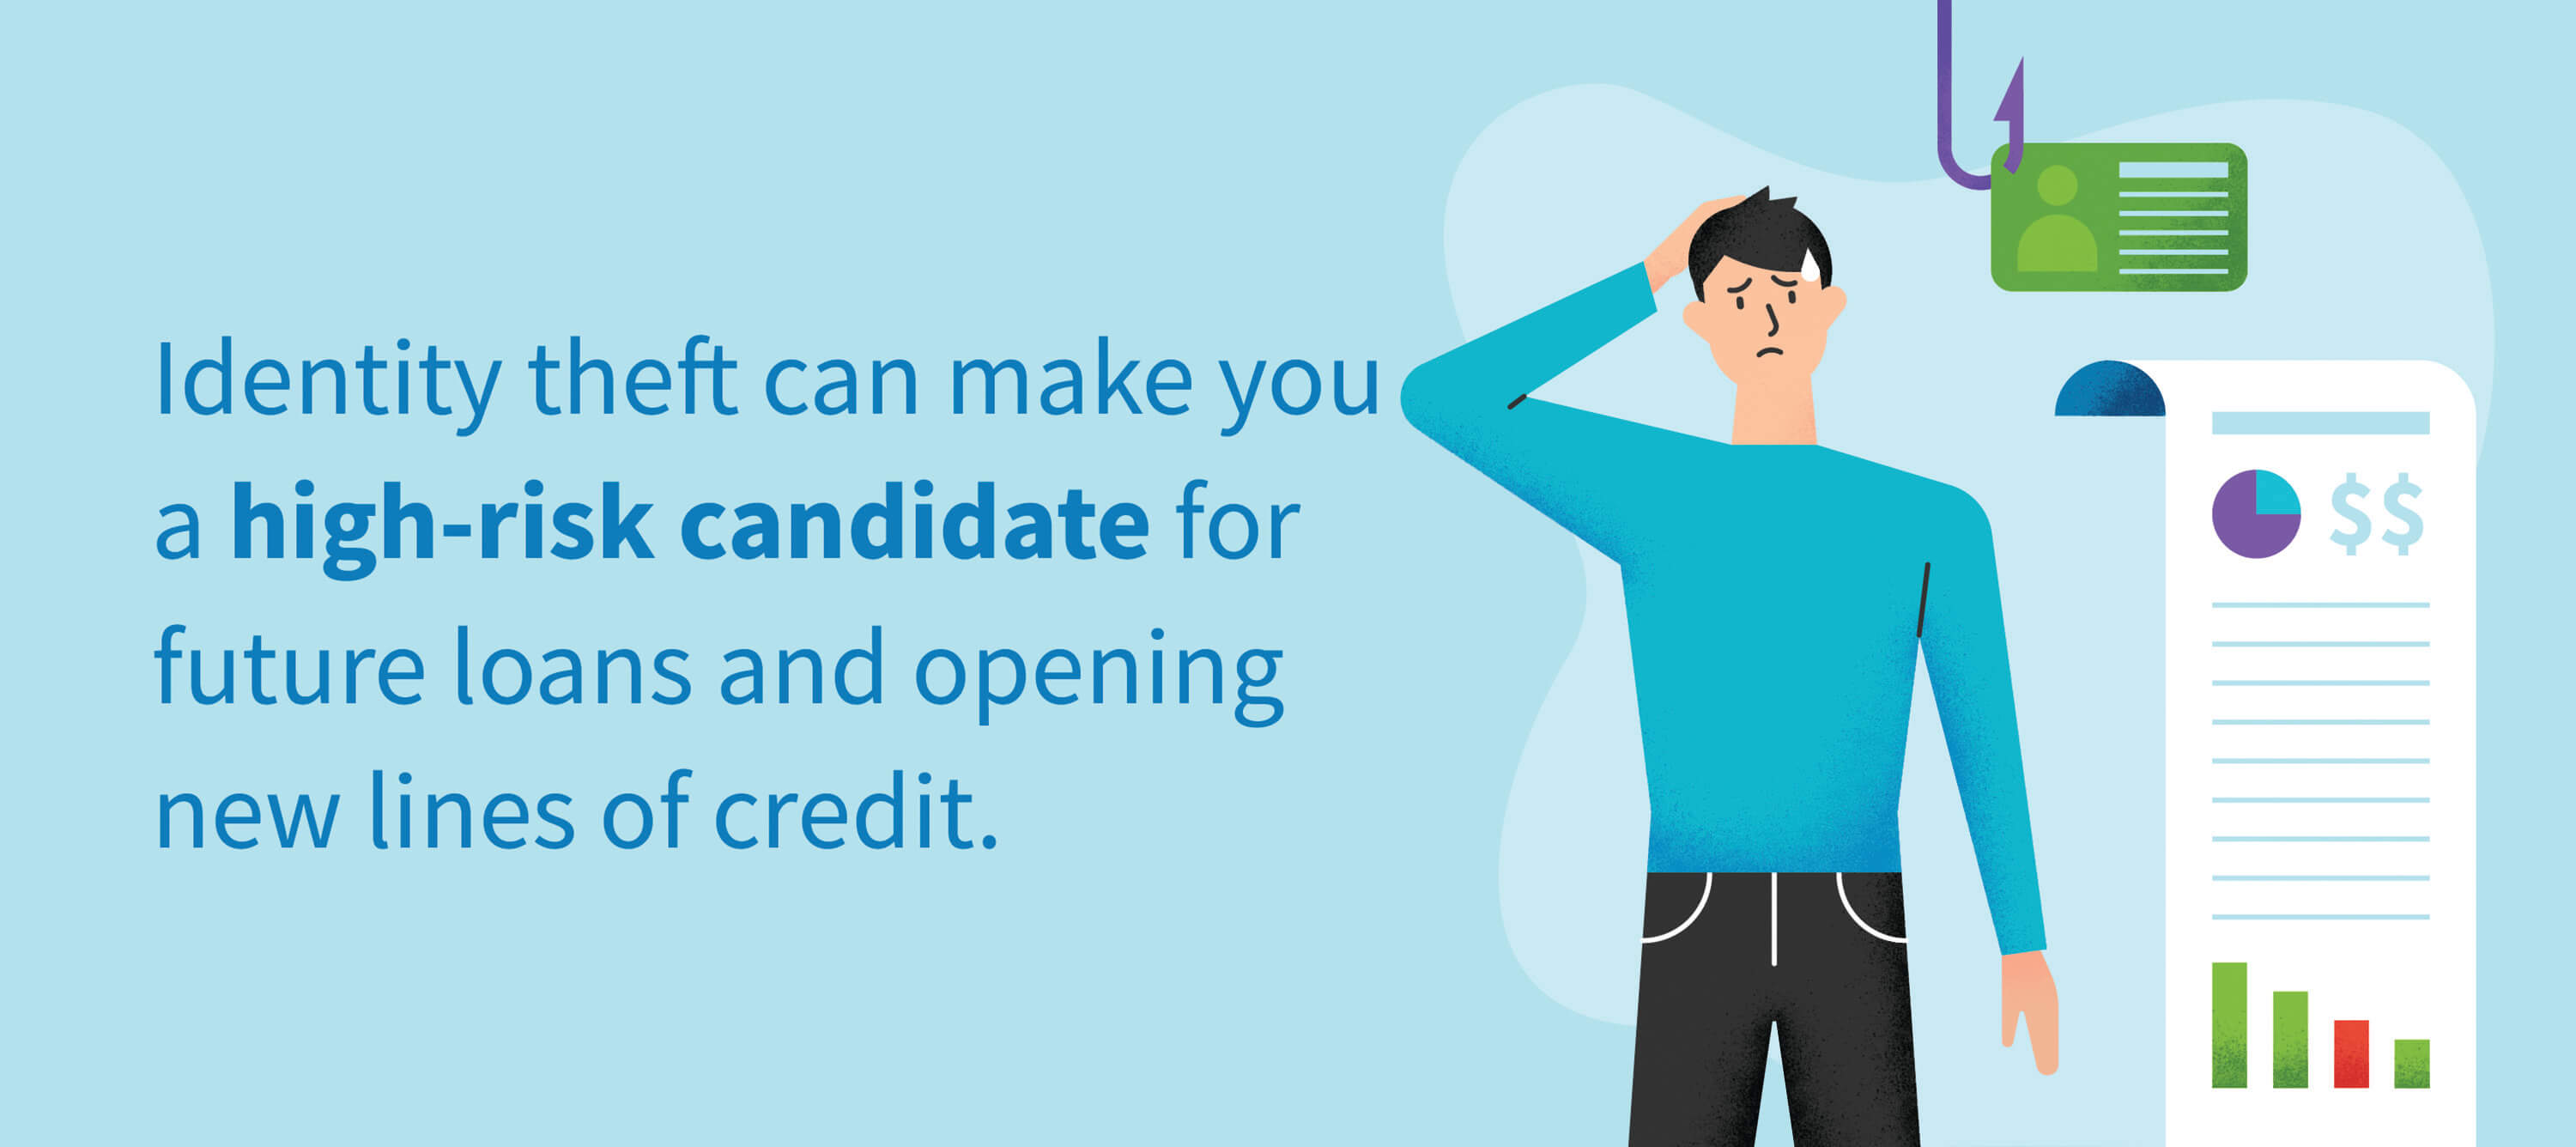 Identity theft can make you a high-risk candidate for future loans and opening new lines of credit.